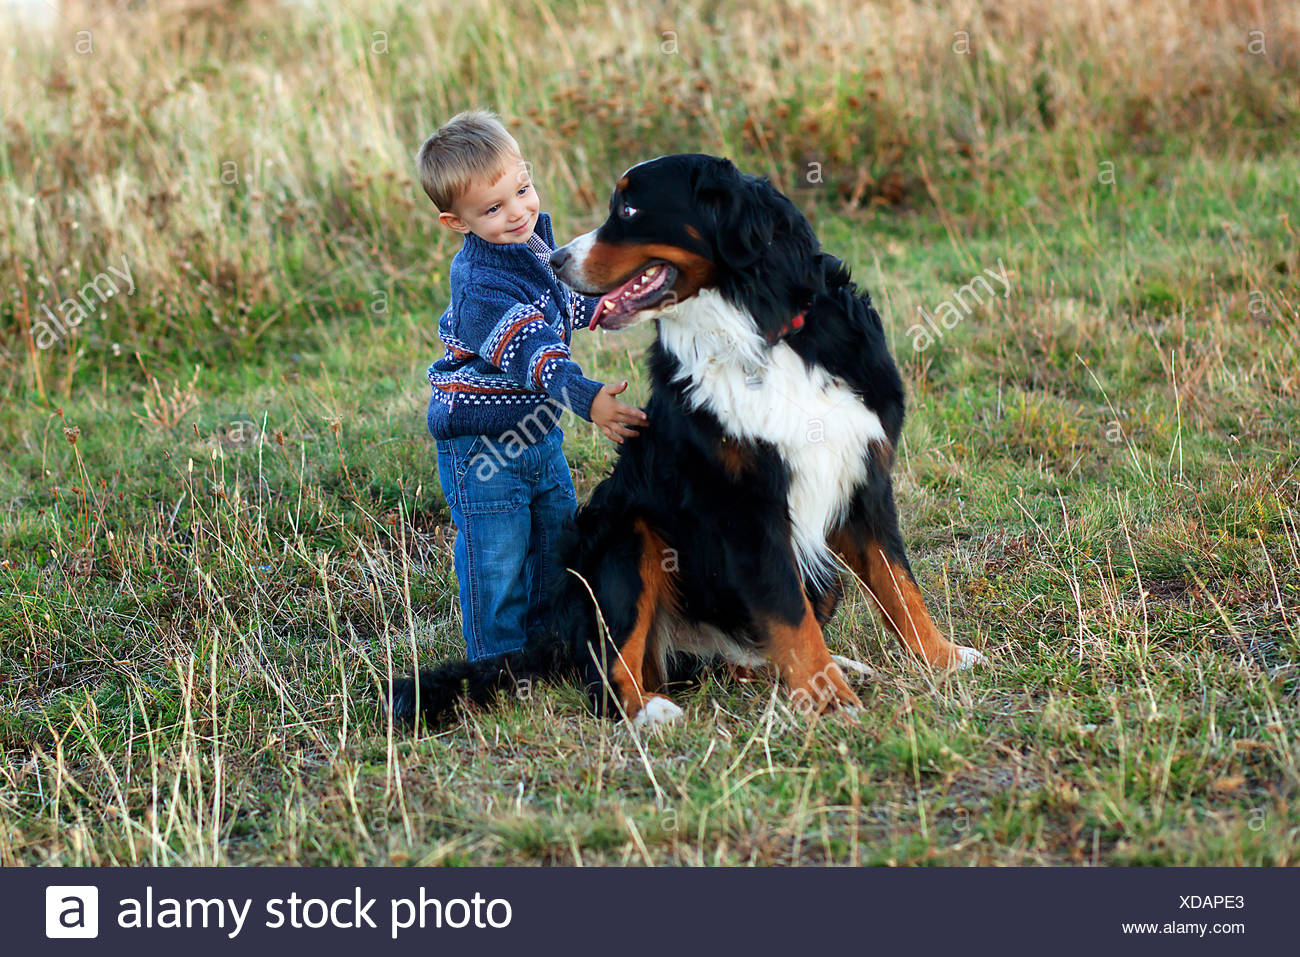 Toddler boy (18-23 months) with big dog - Stock Image